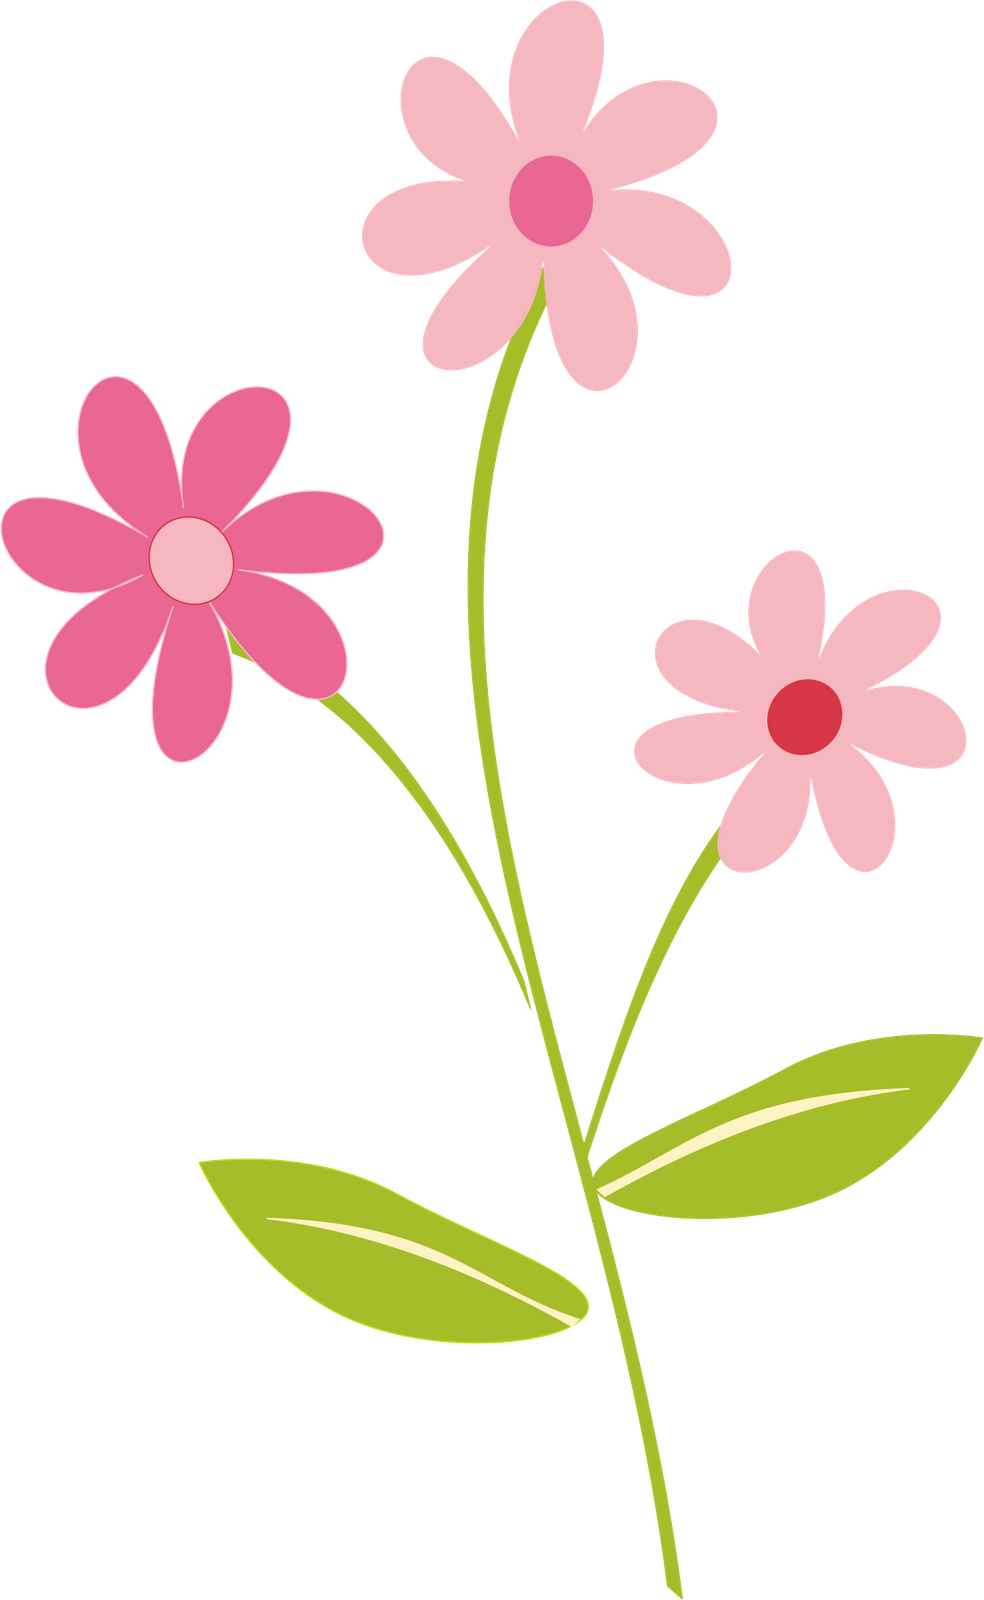 Whimsical flower clipart clipart transparent library Flowers Border Clipart Png - clipartsgram.com | FLOWERS | Pinterest ... clipart transparent library